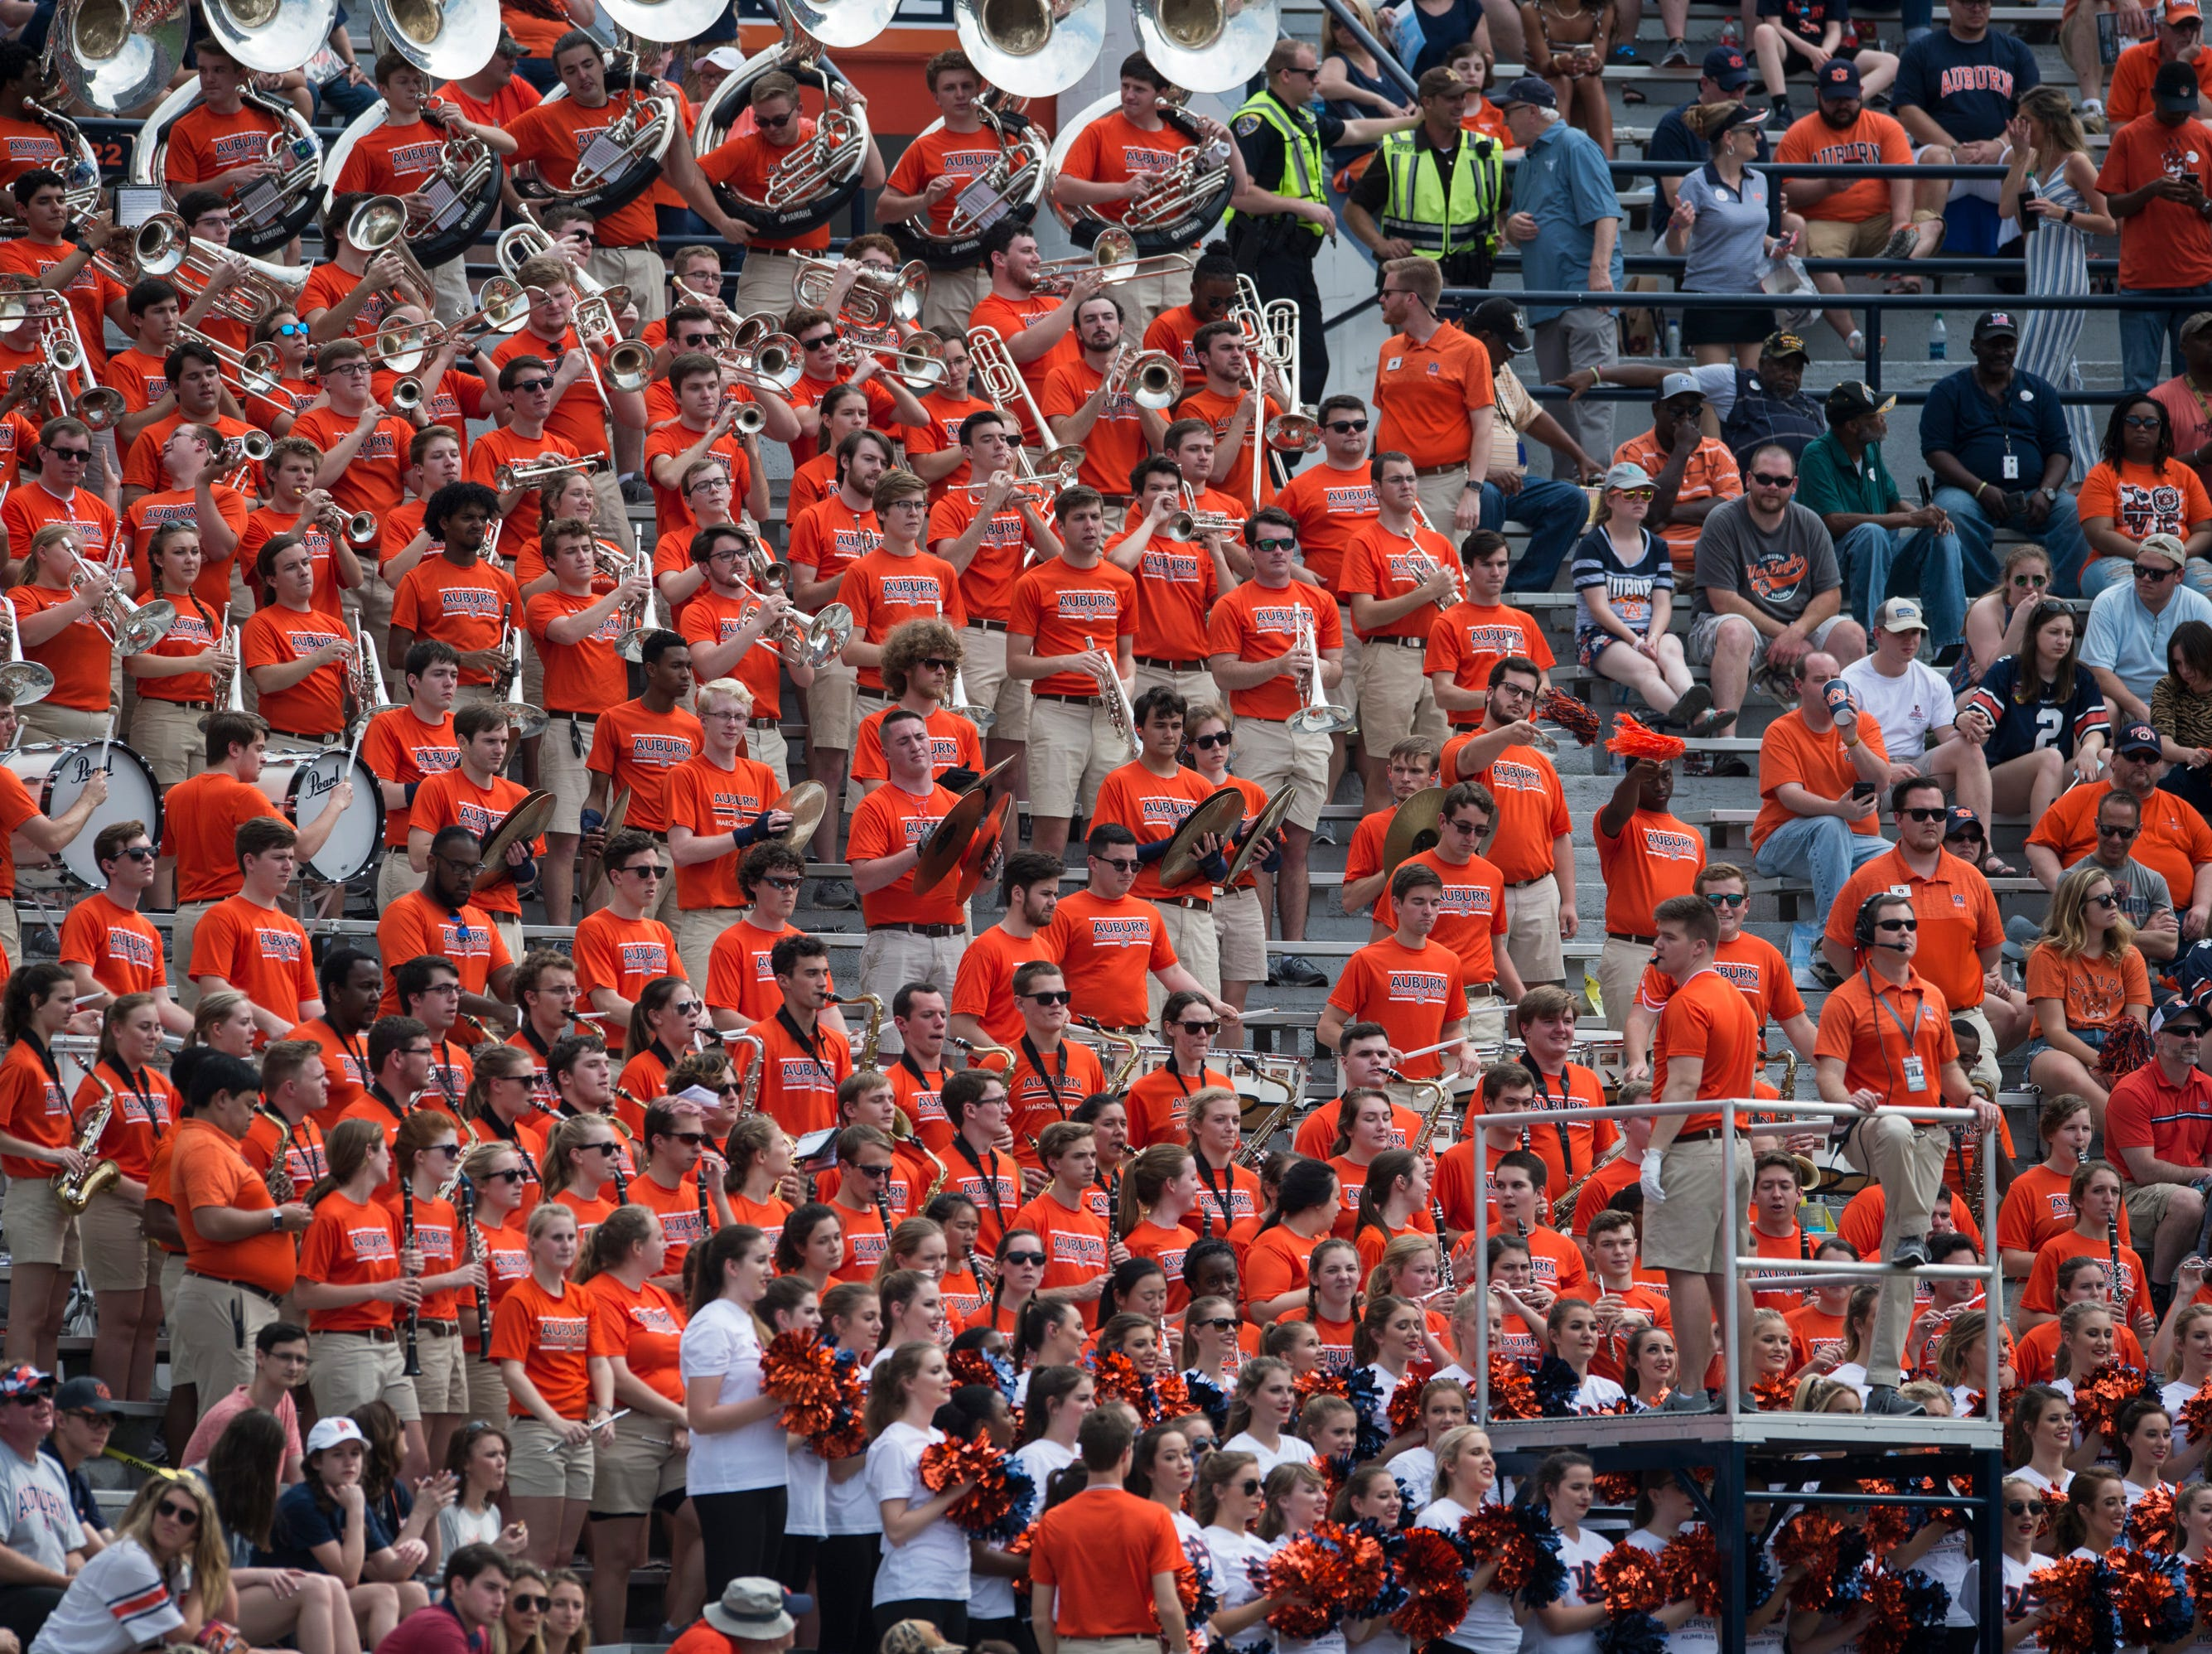 Auburn's band plays during the A-Day spring practice gameat Jordan-Hare Stadium in Auburn, Ala., on Saturday, April 13, 2019.